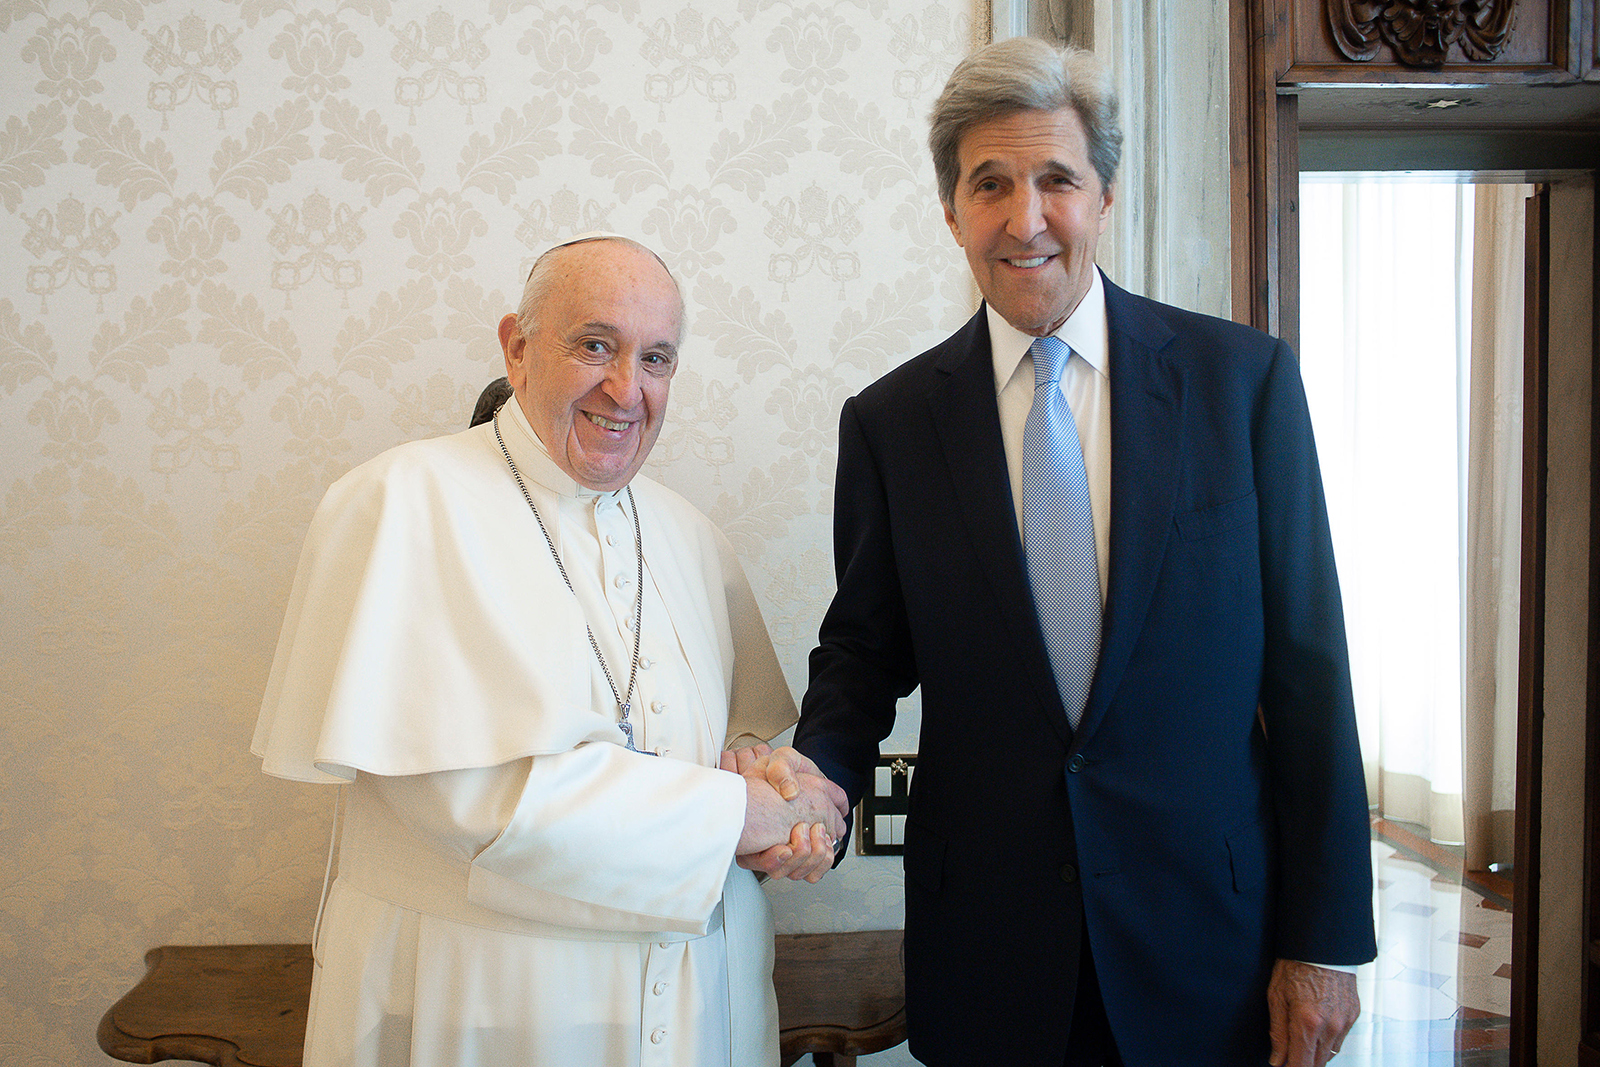 """Pope Francis, left, and John Kerry pose as they meet at the Vatican on May 15, 2021. Kerry, who is President Joe Biden's special envoy on the climate, met privately with the pope Saturday, afterward calling Francis """"a compelling moral authority on the subject of the climate crisis"""" who has been """"ahead of the curve."""" (Photo by Vatican Media)"""